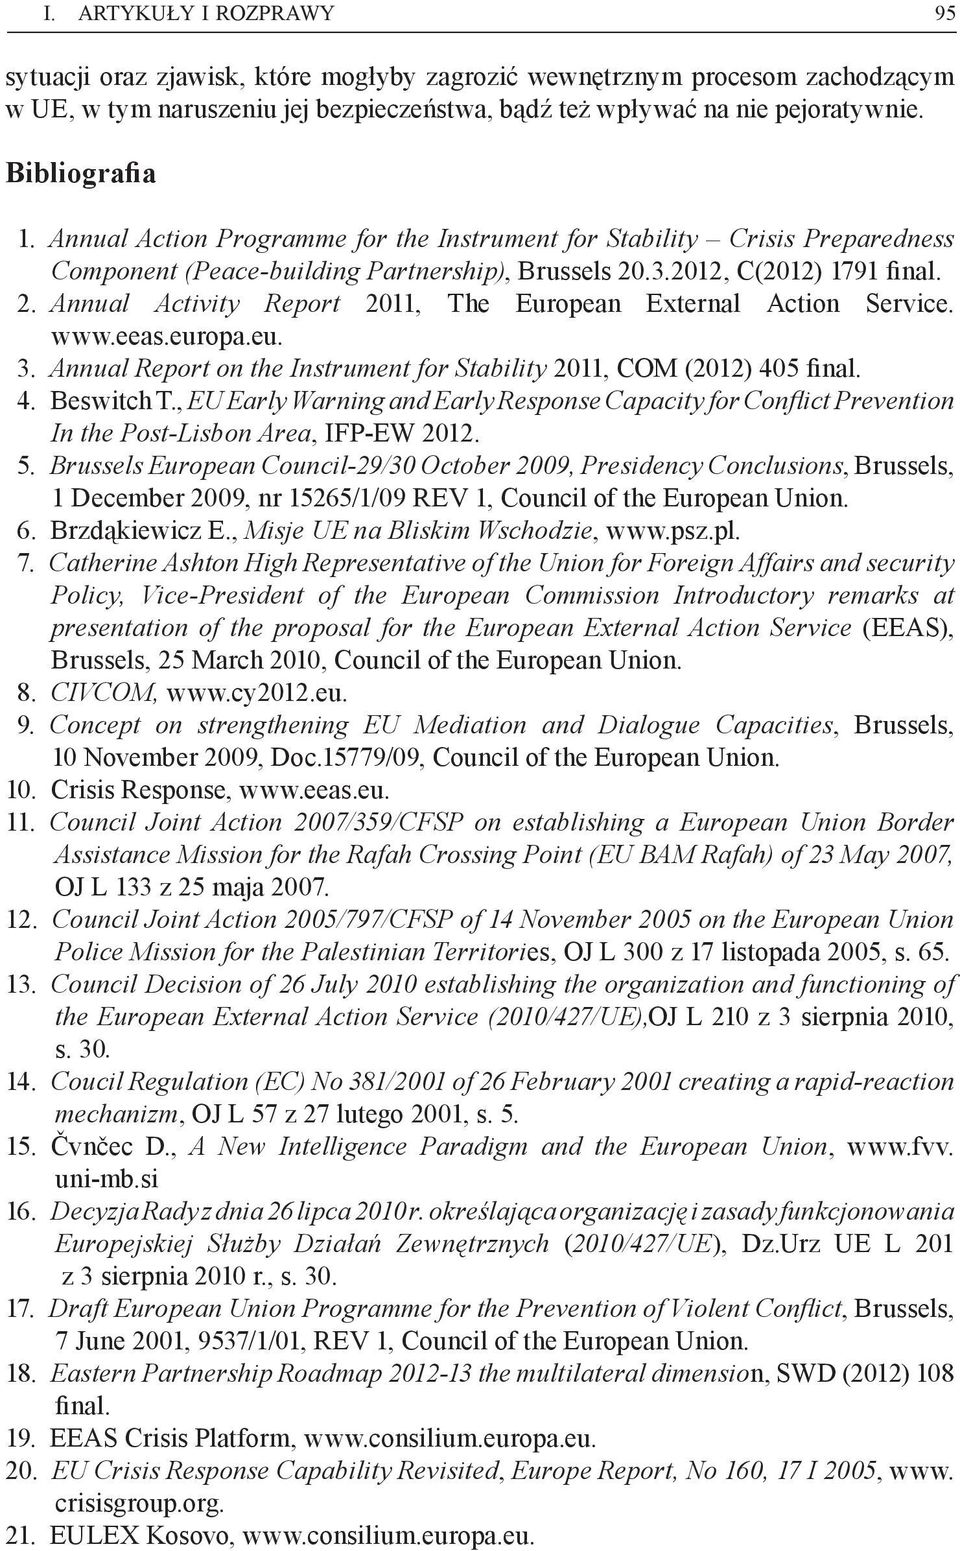 .3.2012, C(2012) 1791 final. 2. Annual Activity Report 2011, The European External Action Service. www.eeas.europa.eu. 3. Annual Report on the Instrument for Stability 2011, COM (2012) 405 final. 4. Beswitch T.